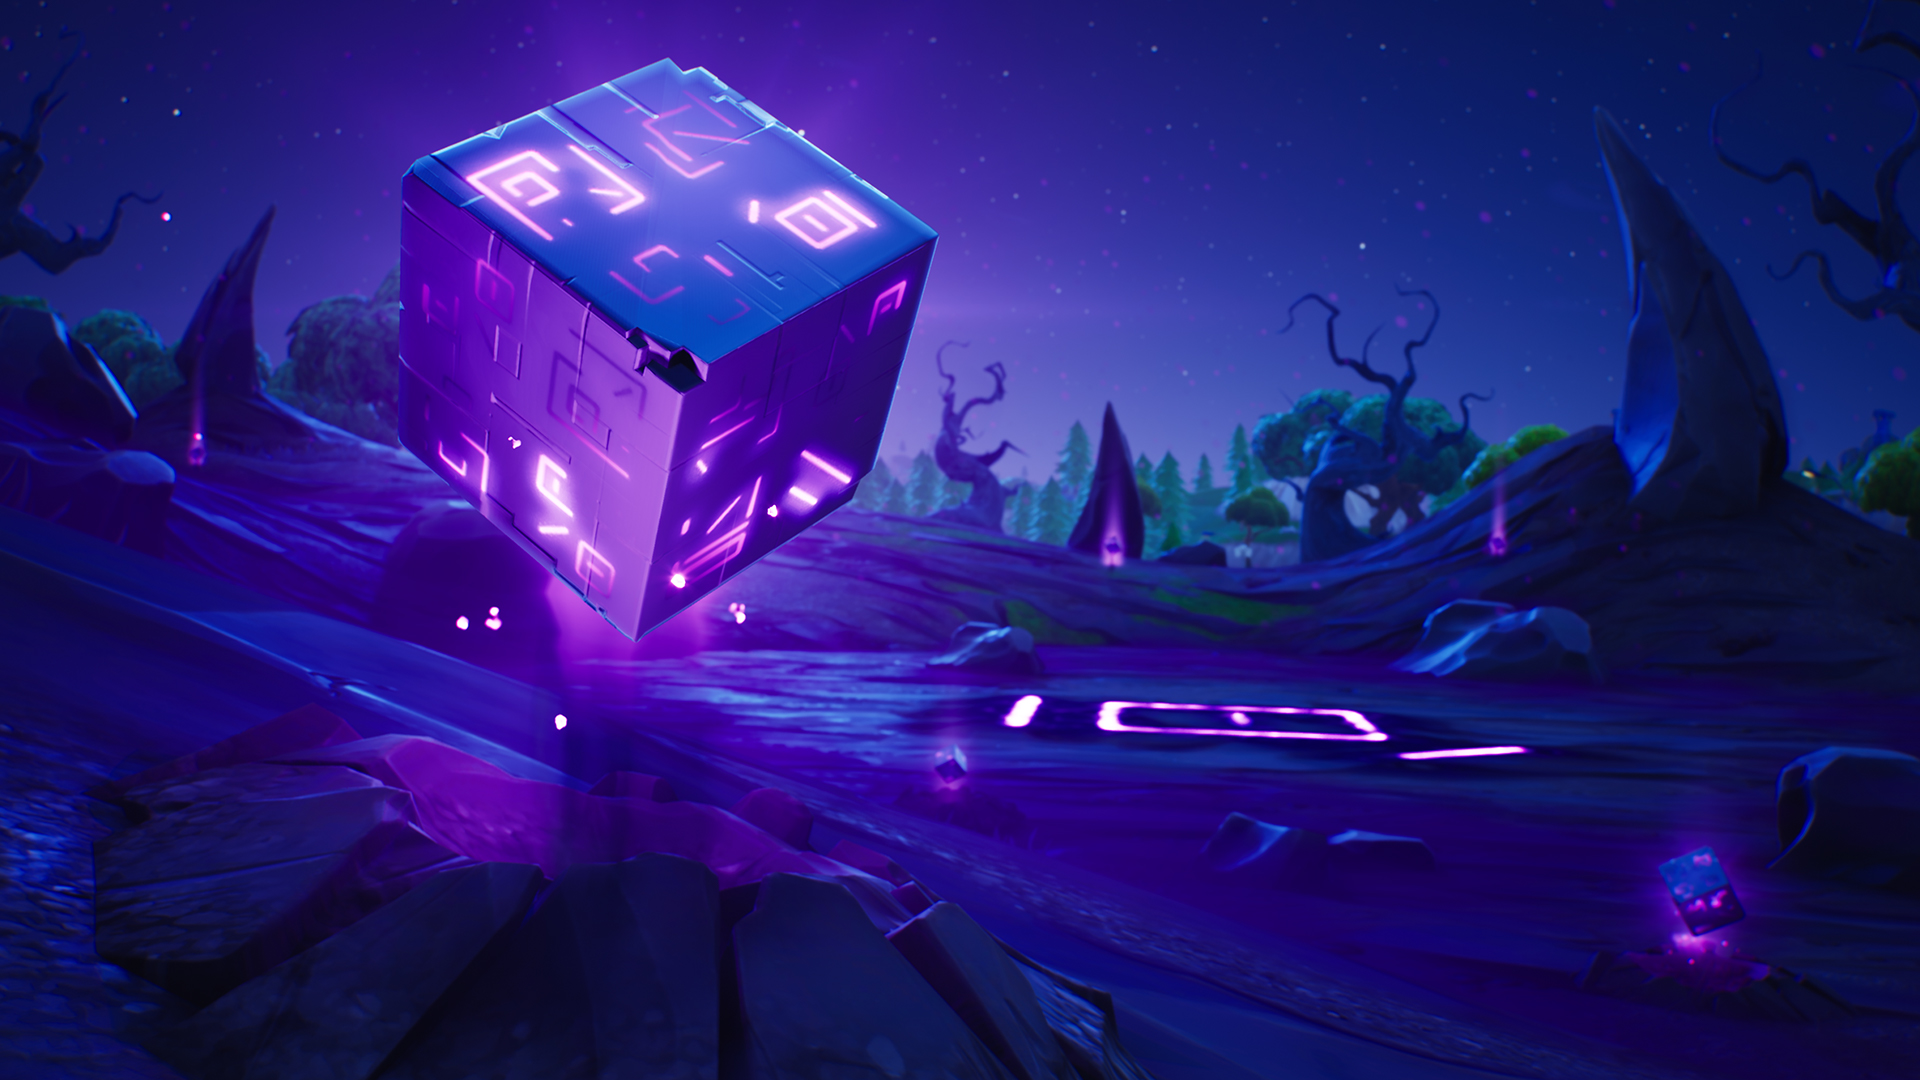 Fortnite Season 6 Darkness Rises Battle Pass Introduces New Skins